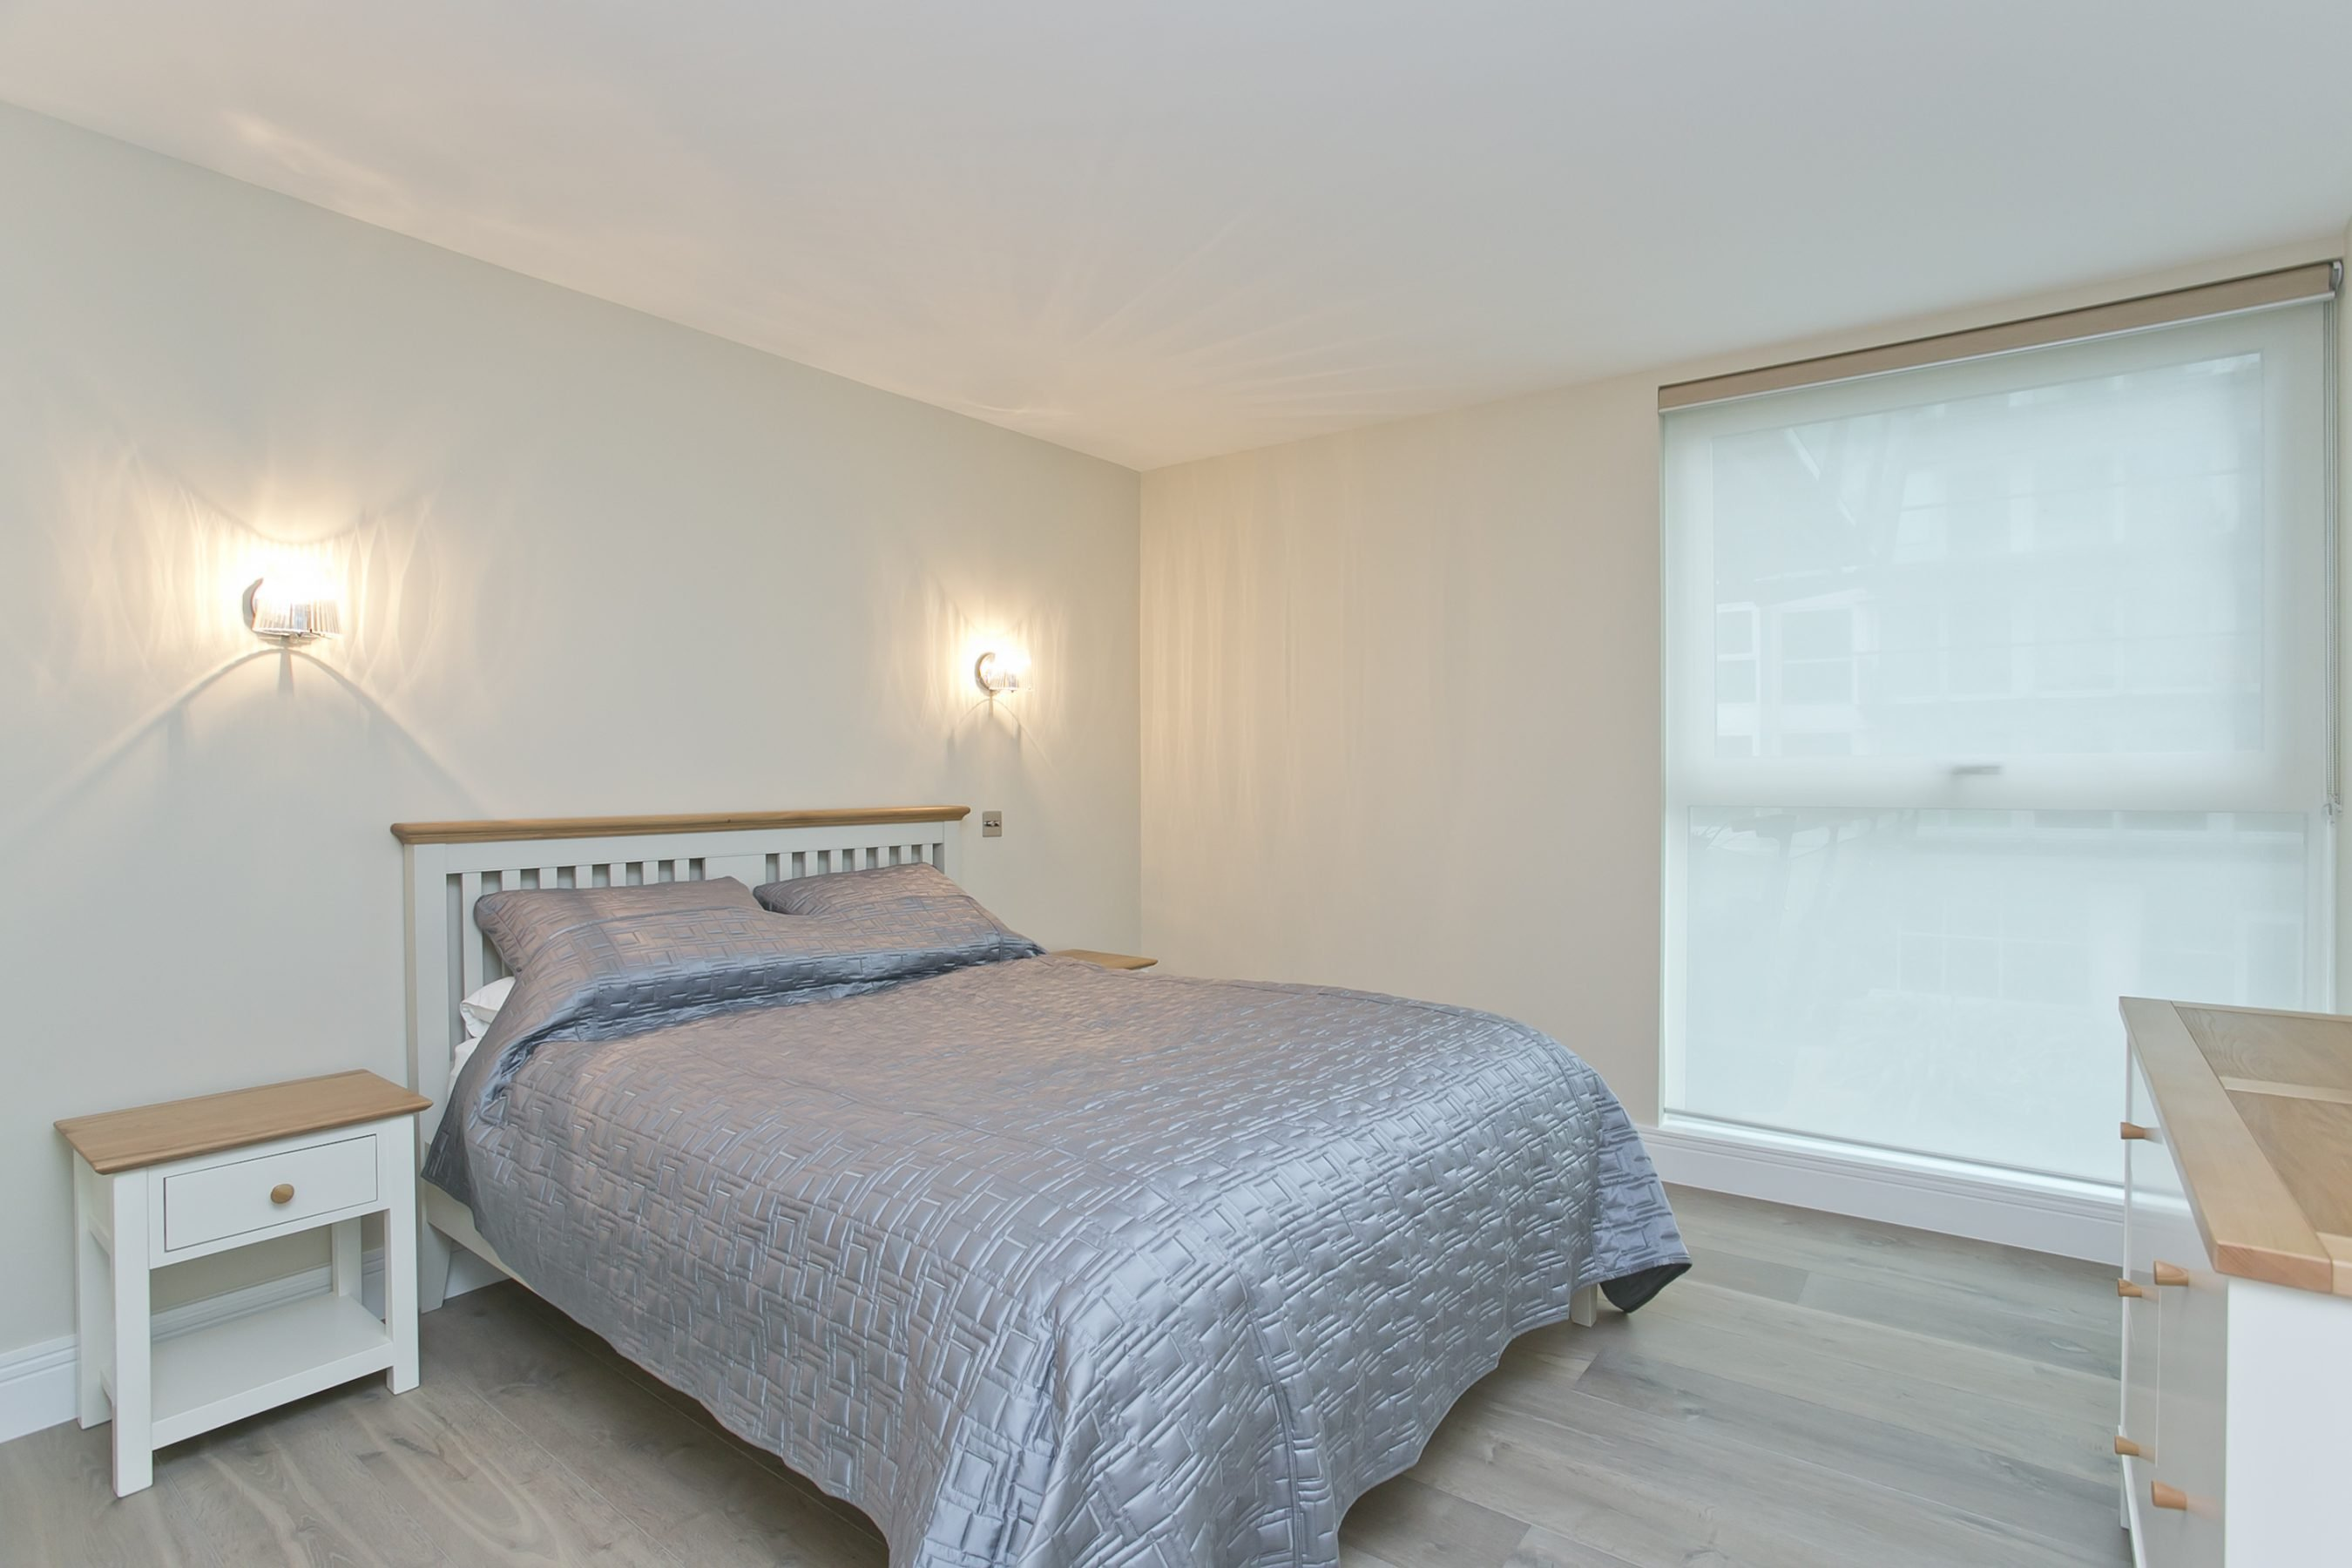 residential painting and decorating for light and spacious bedroom in Wapping, London: Walls in Dulux Almond White, woodwork and ceiling in Brilliant White